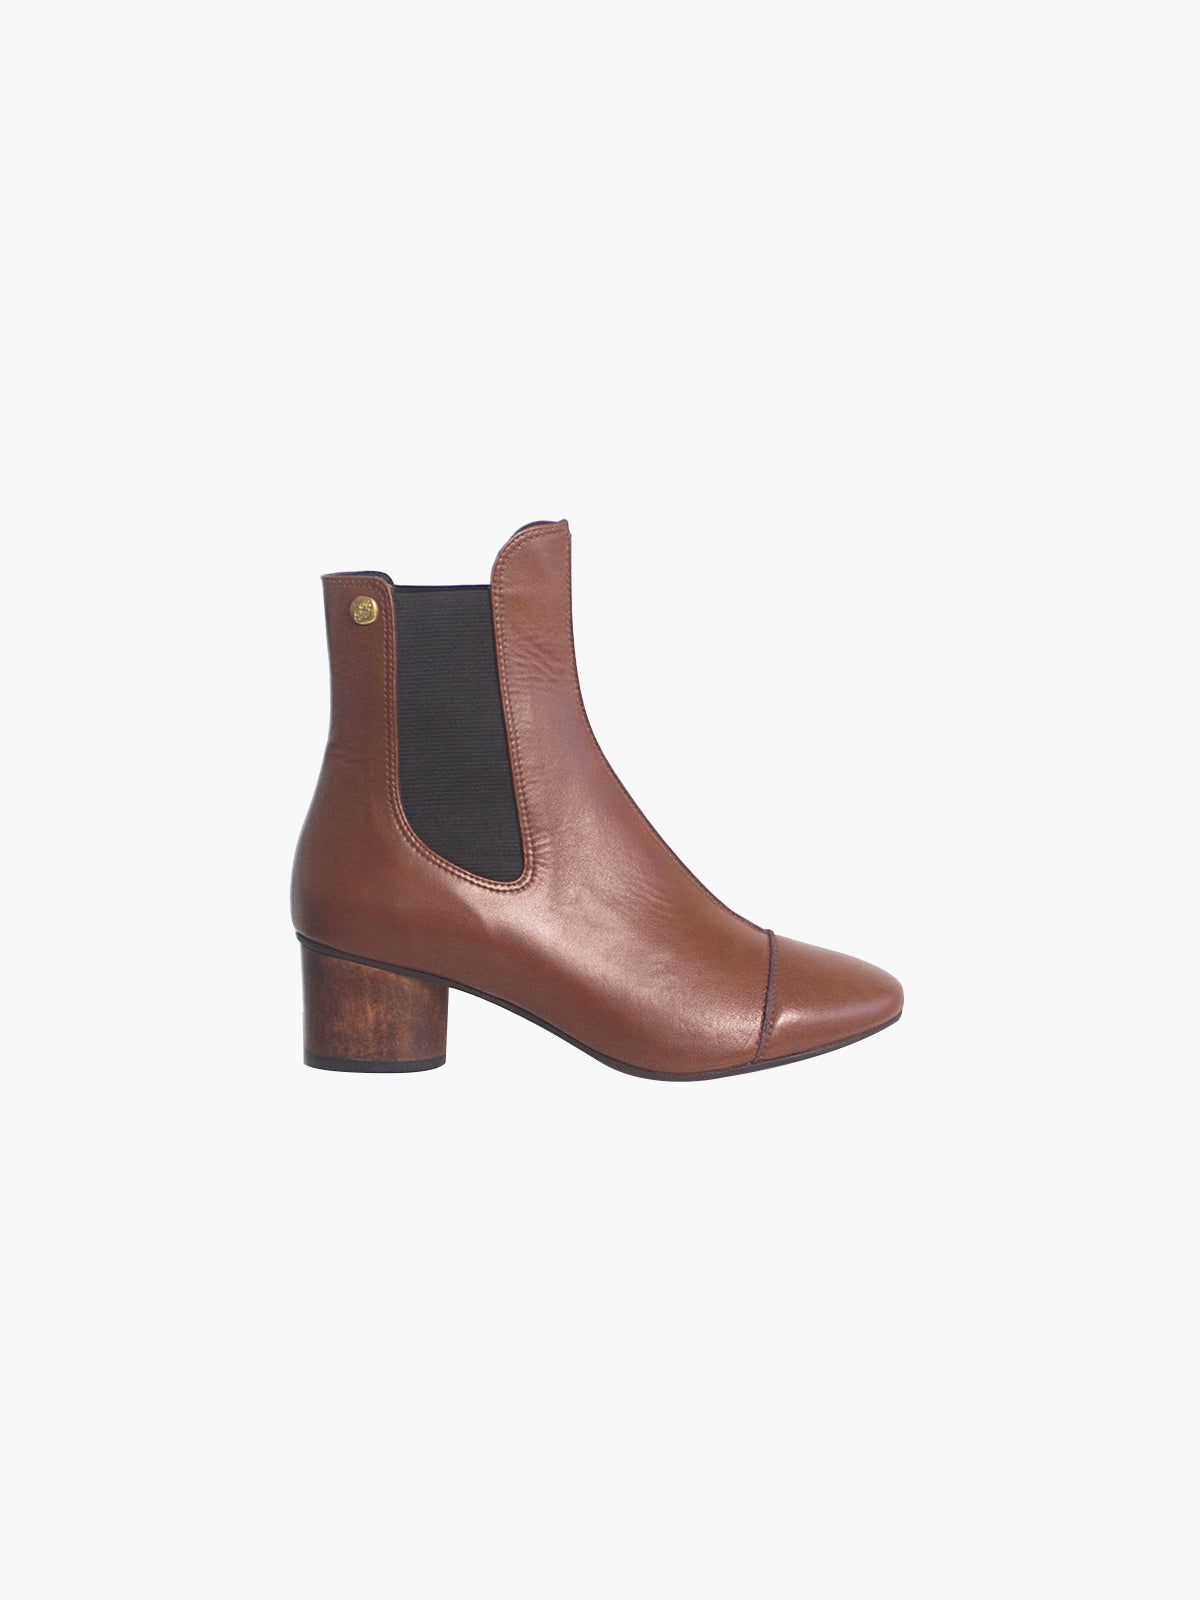 The Patti | Saddle